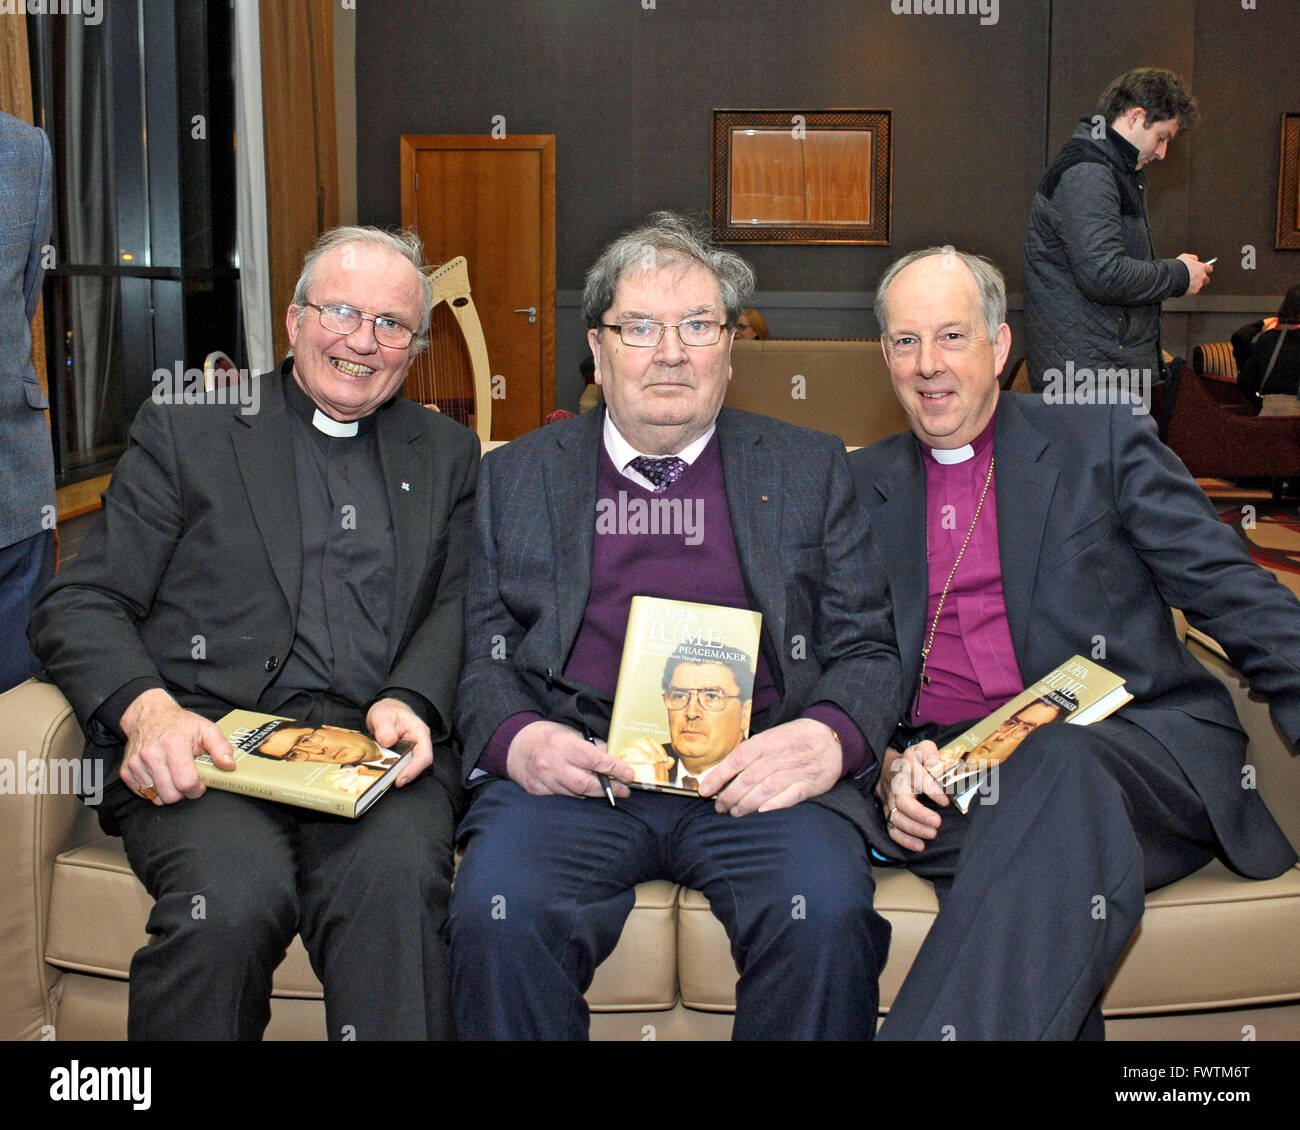 Catholic Bishop of Derry Donal McKeown (left), John Hume, and Church of Ireland Bishop of Derry Ken Good at launch - Stock Image